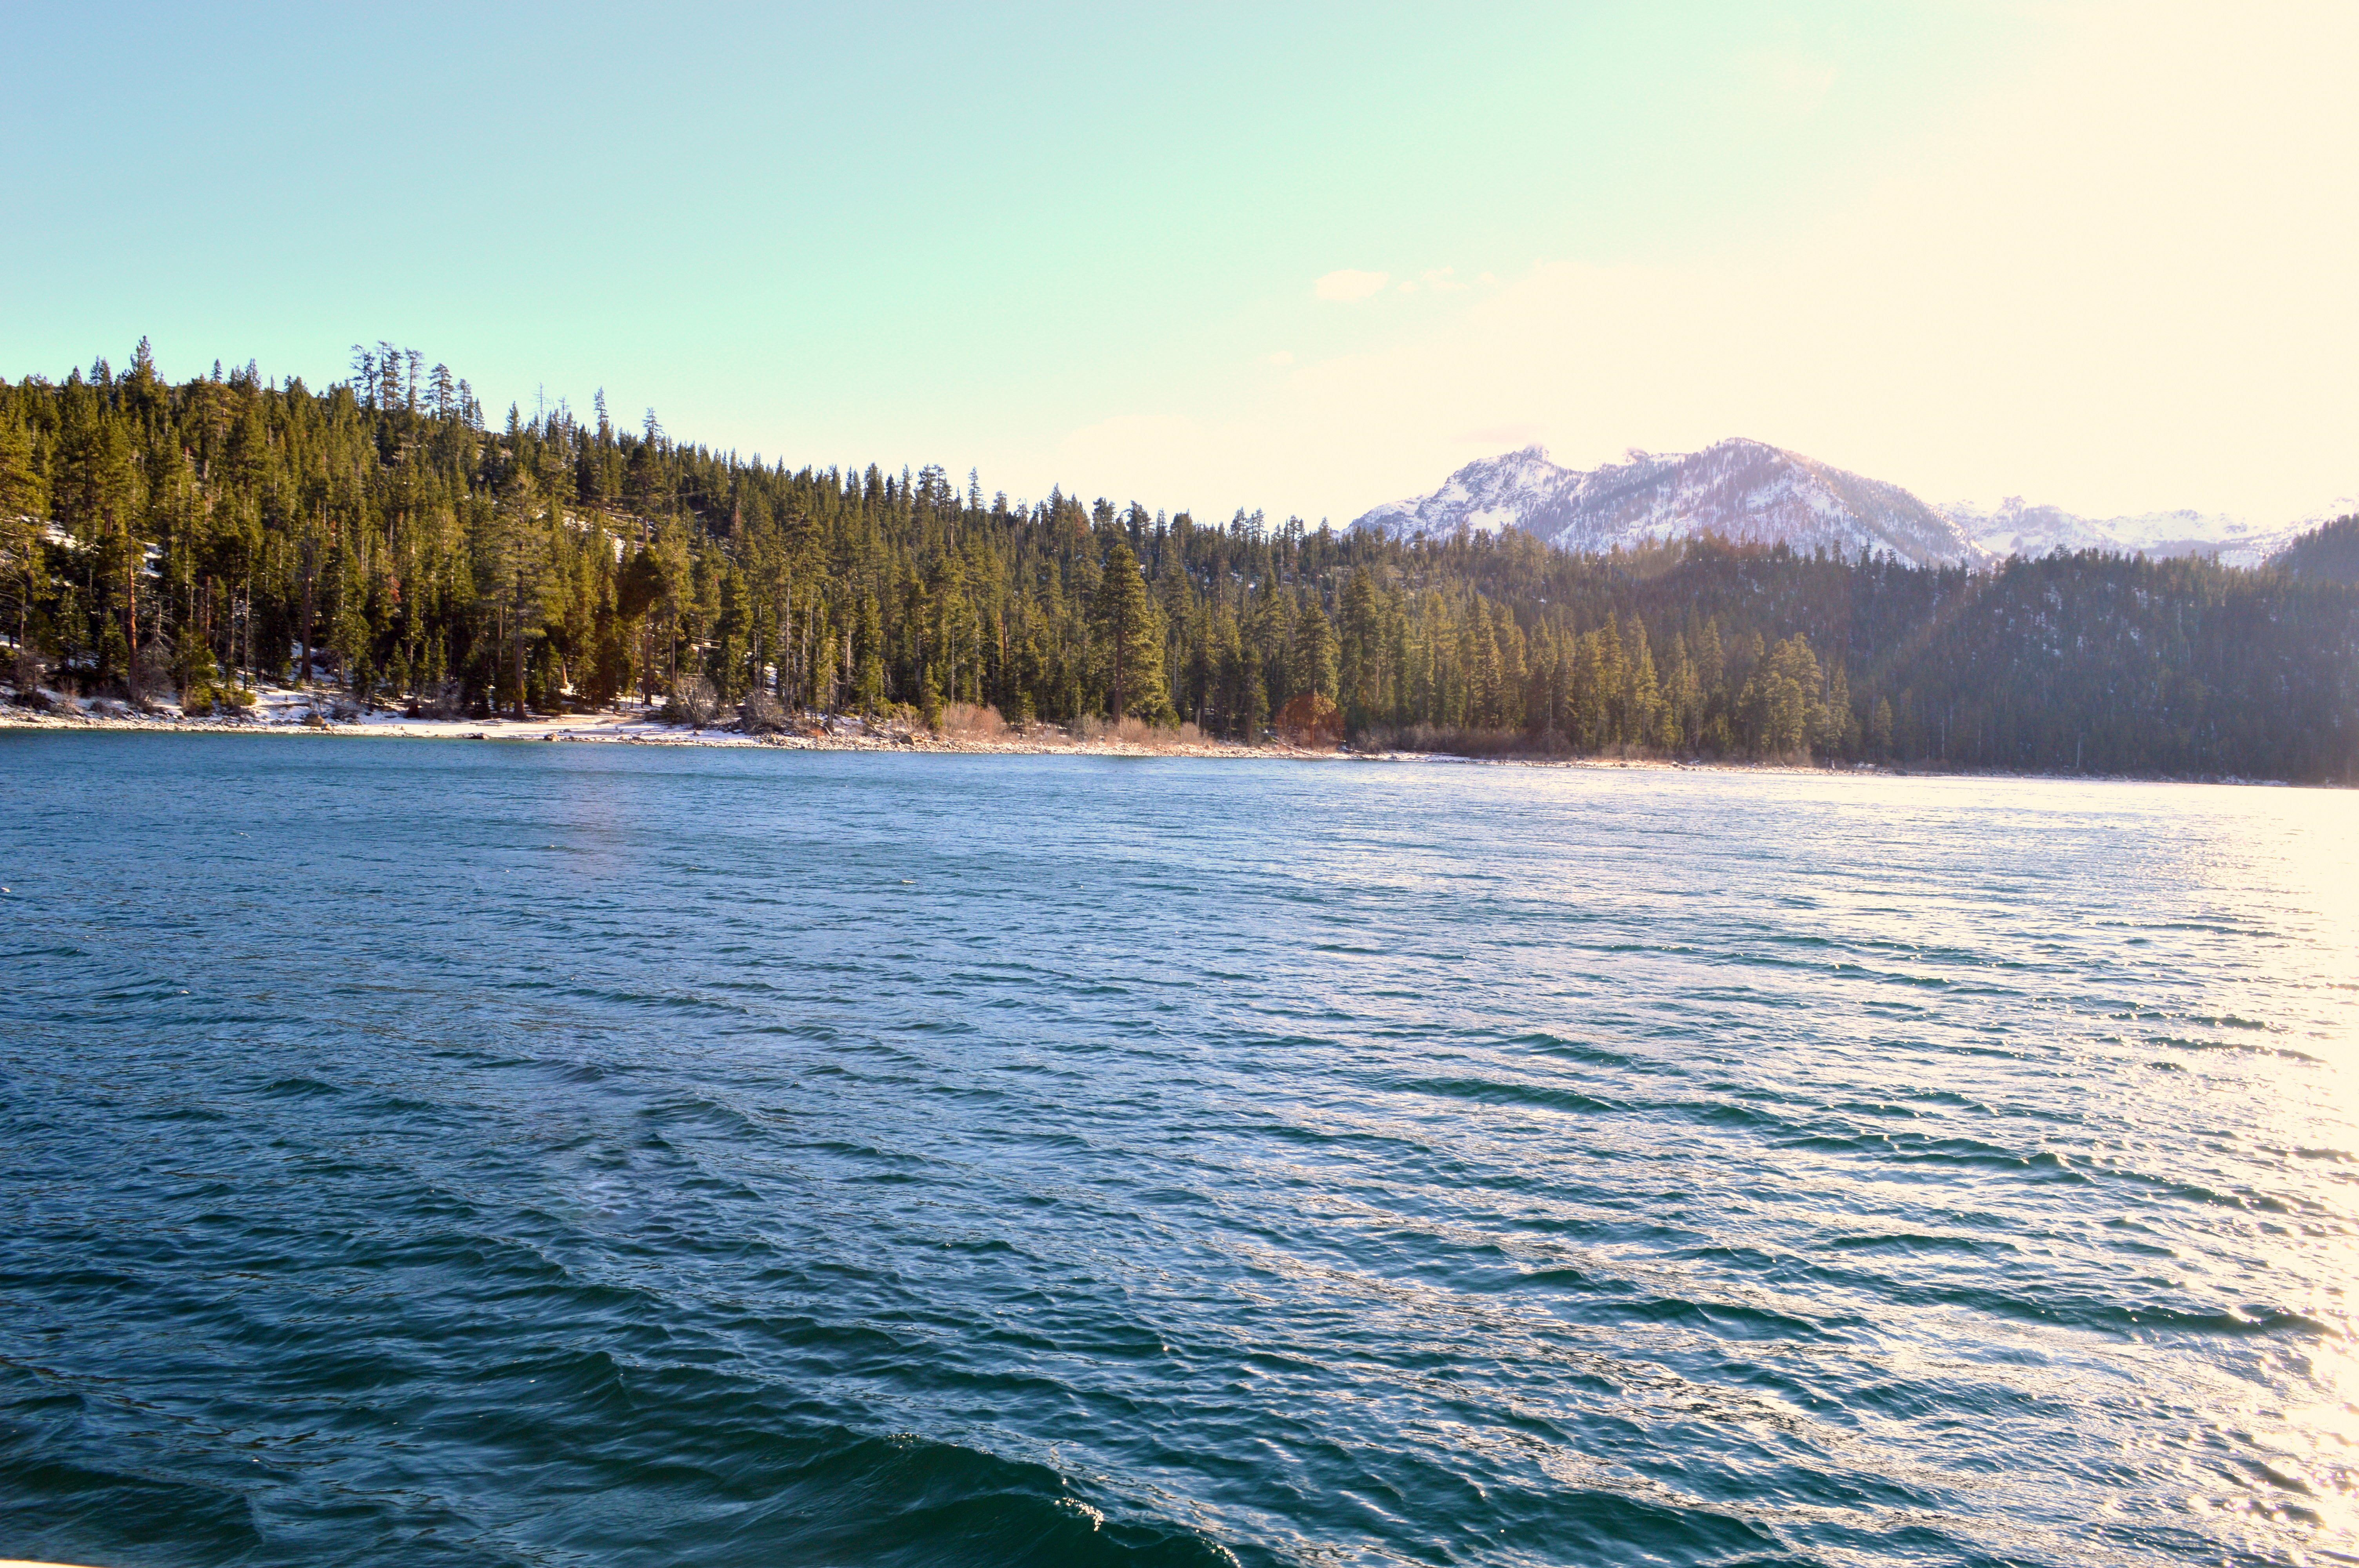 7 Day New Mexico Amp Lake Tahoe Tour From Phoenix